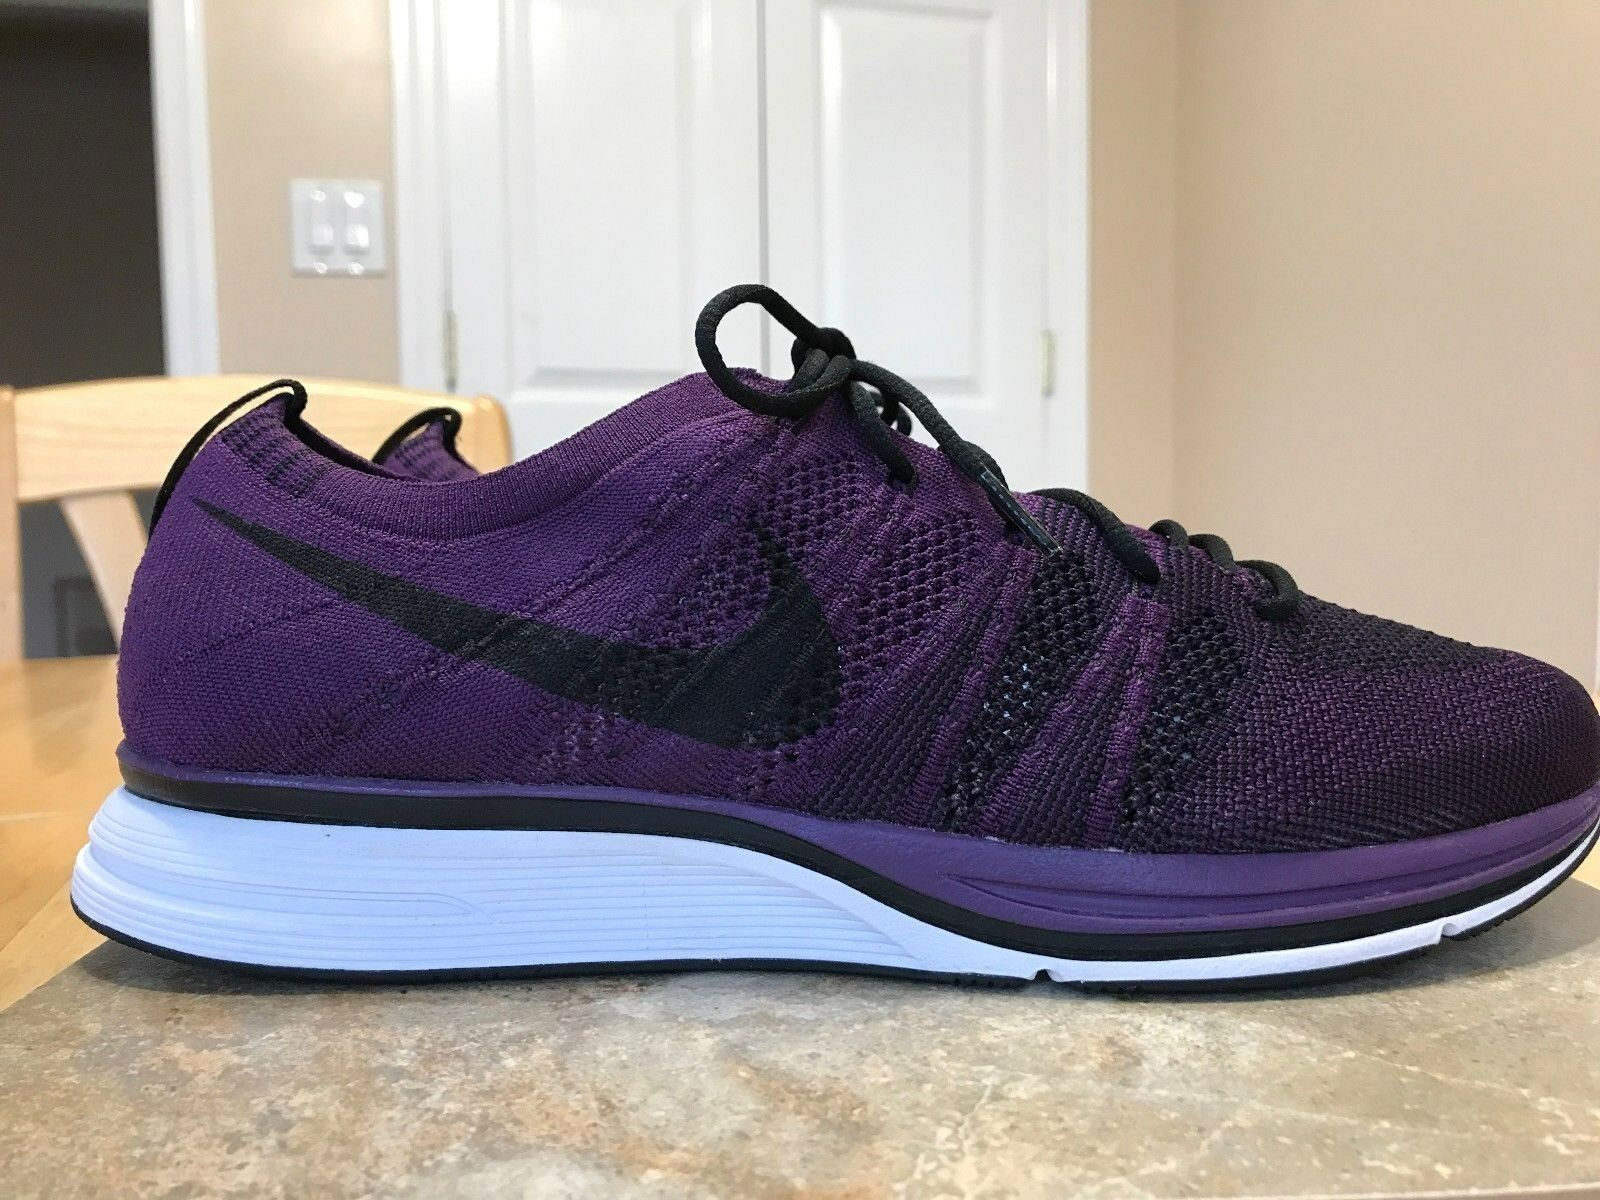 NIKE 2017 FLY KNIT TRAINER MEN'S SHOES AH8396 500 SIZE 10.5 NIGHT PURPLE